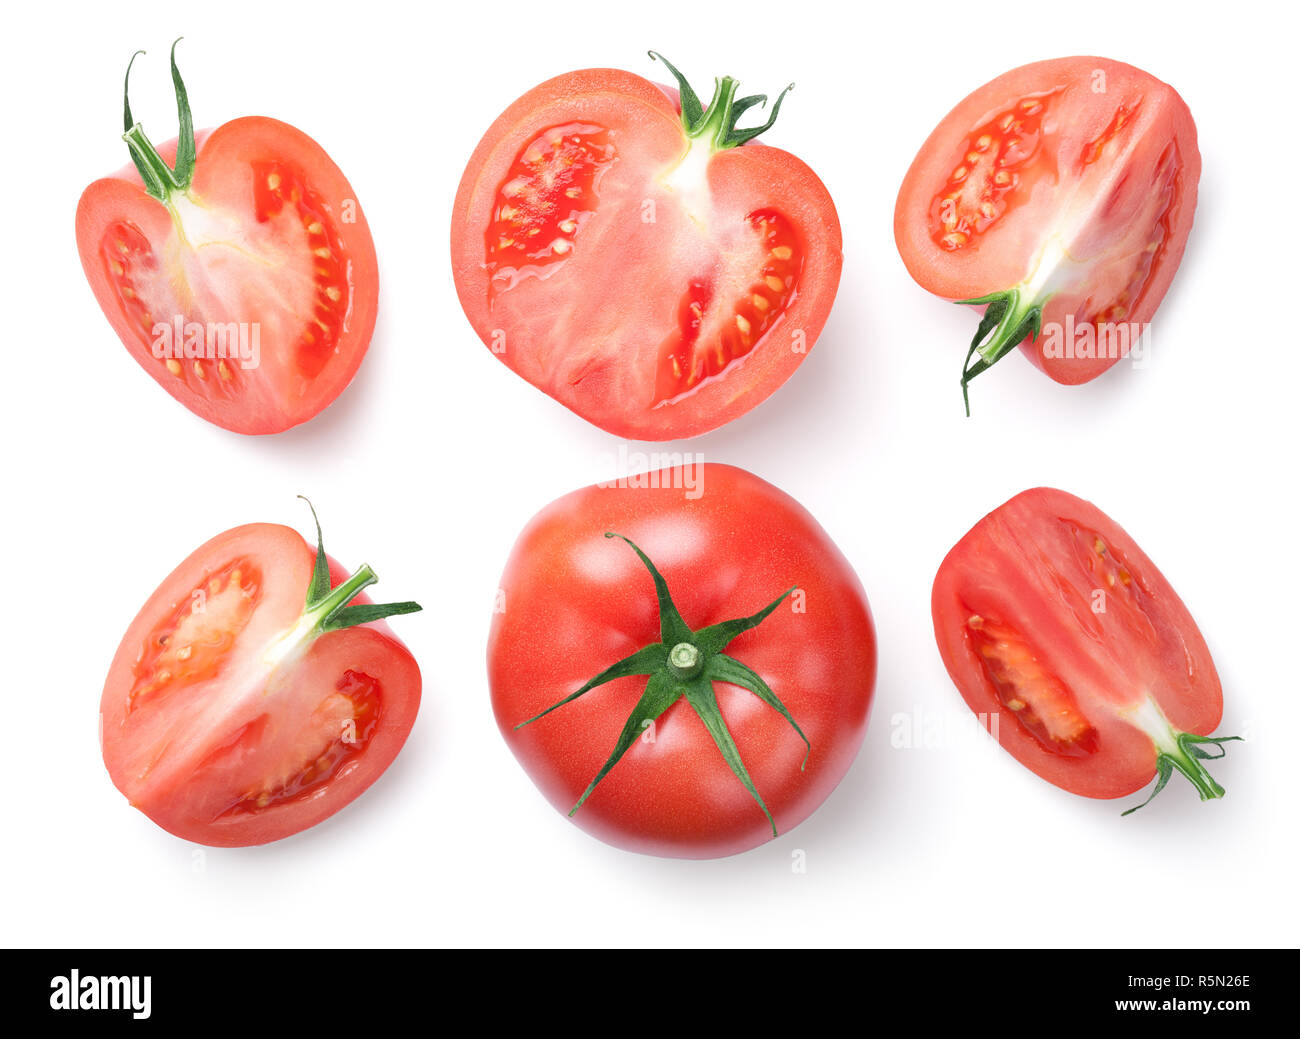 Pink Tomatoes Isolated on White Background - Stock Image